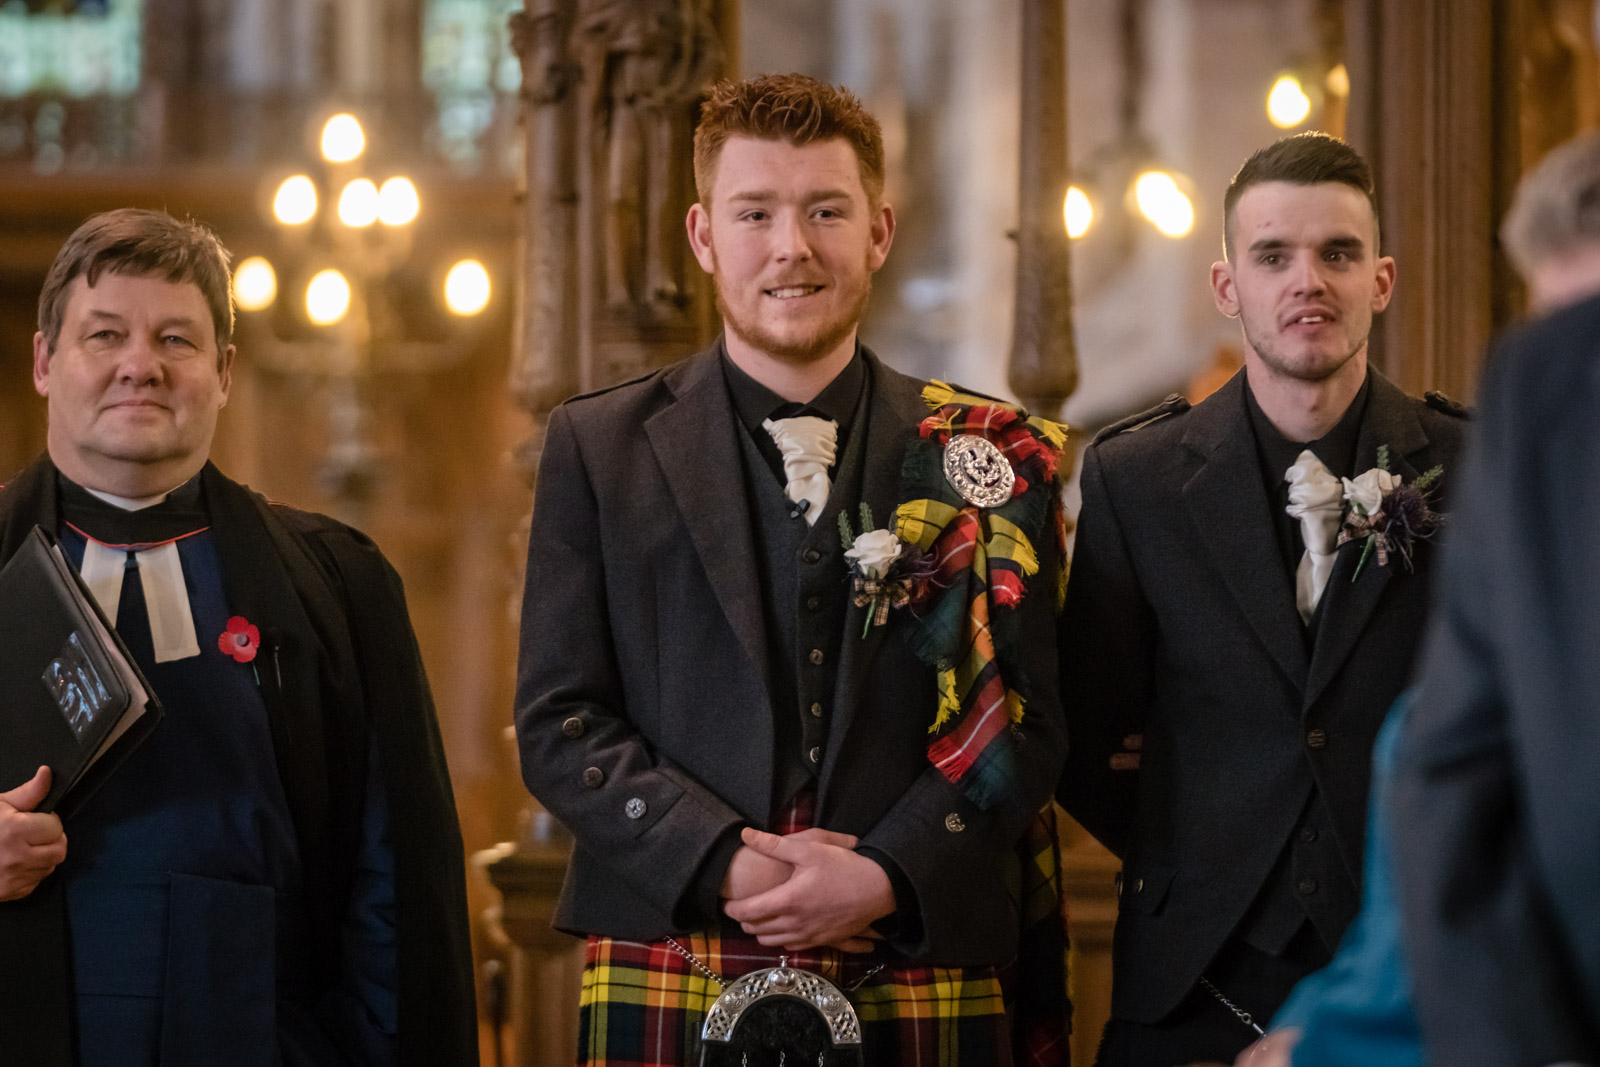 dunblane-hydro-cathedral-wedding-stirlingshire-dearlyphotography (45 of 108).jpg